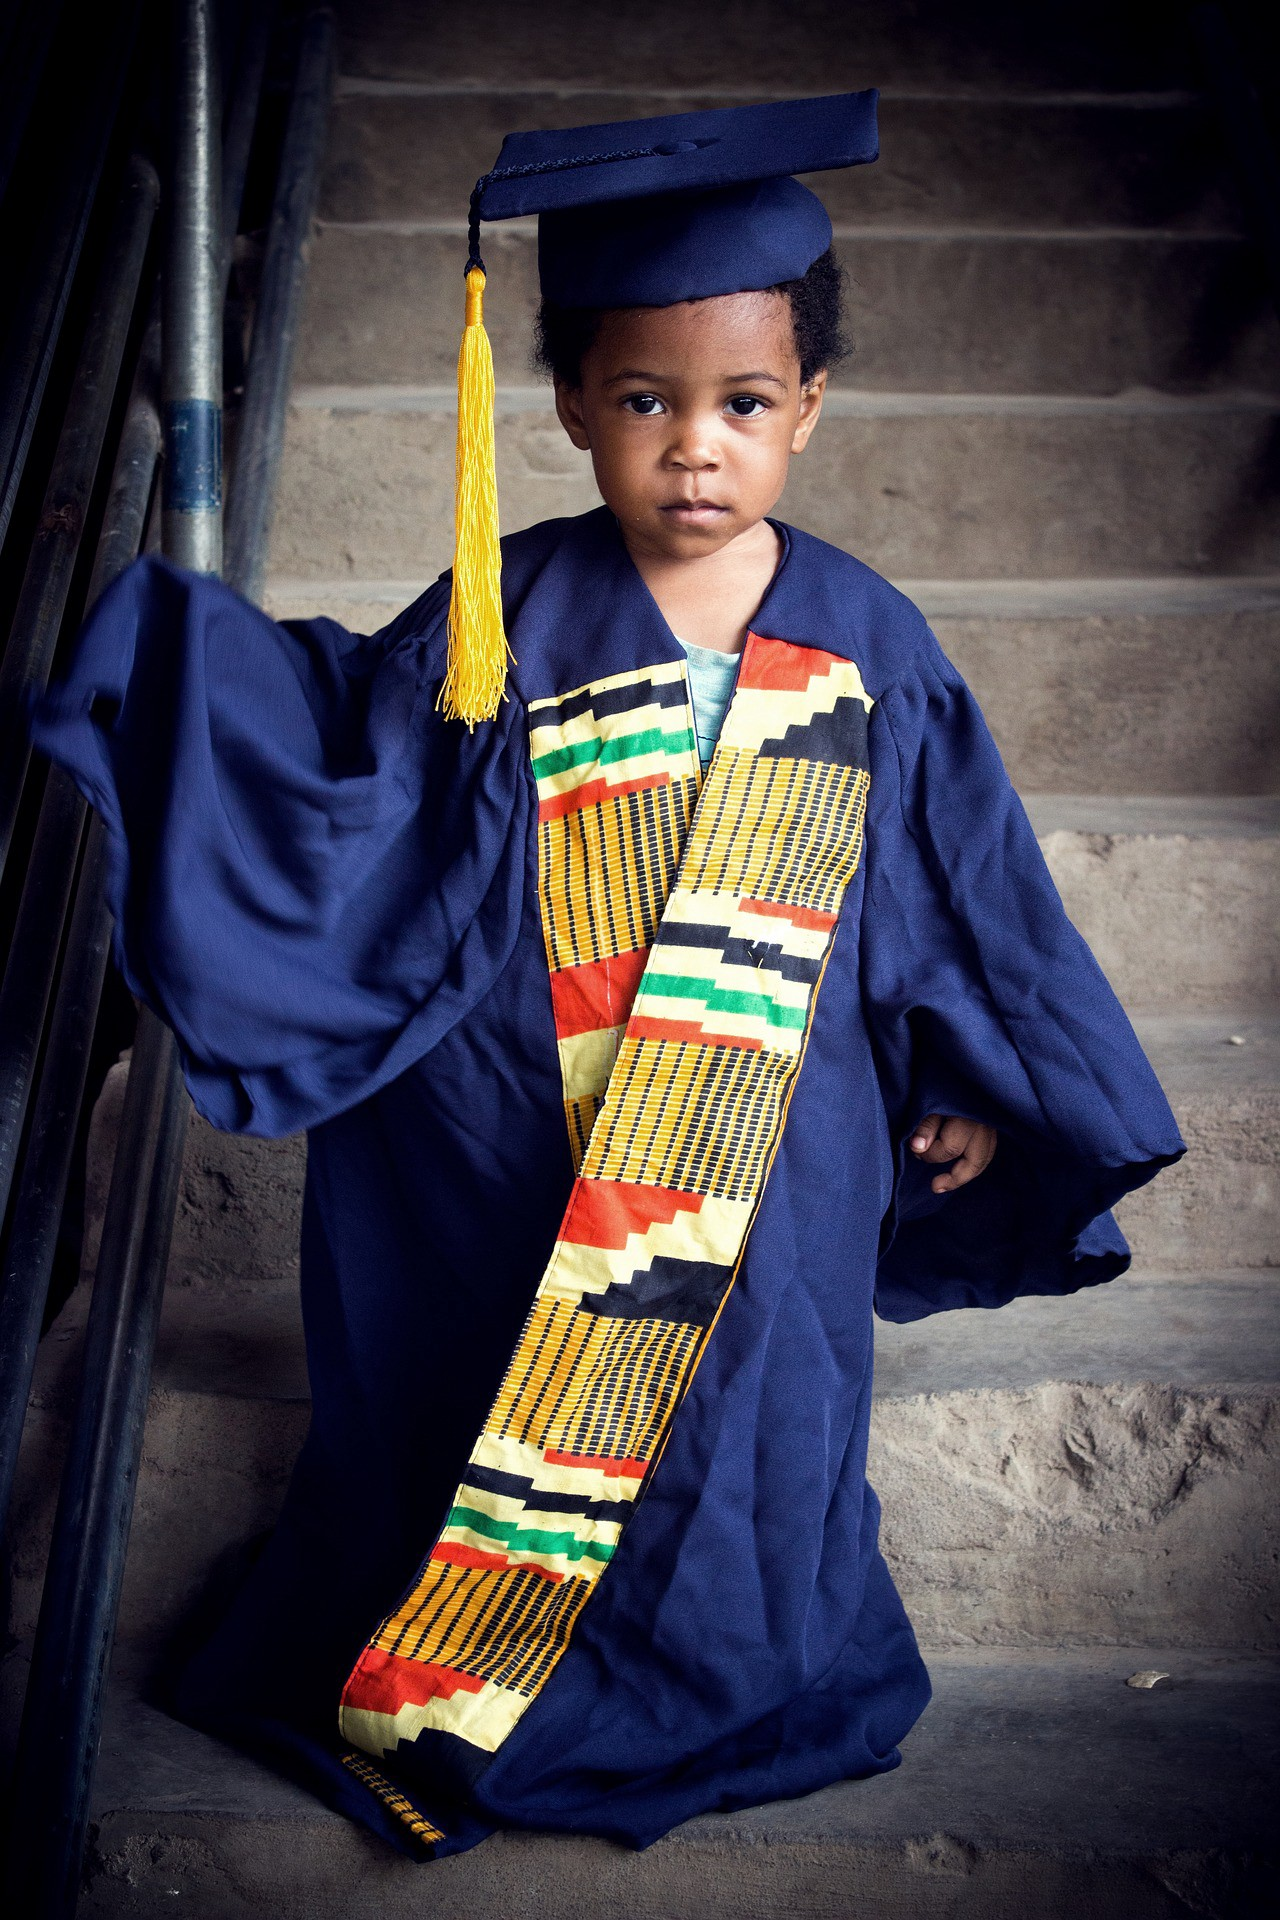 Child wearing graduation robes